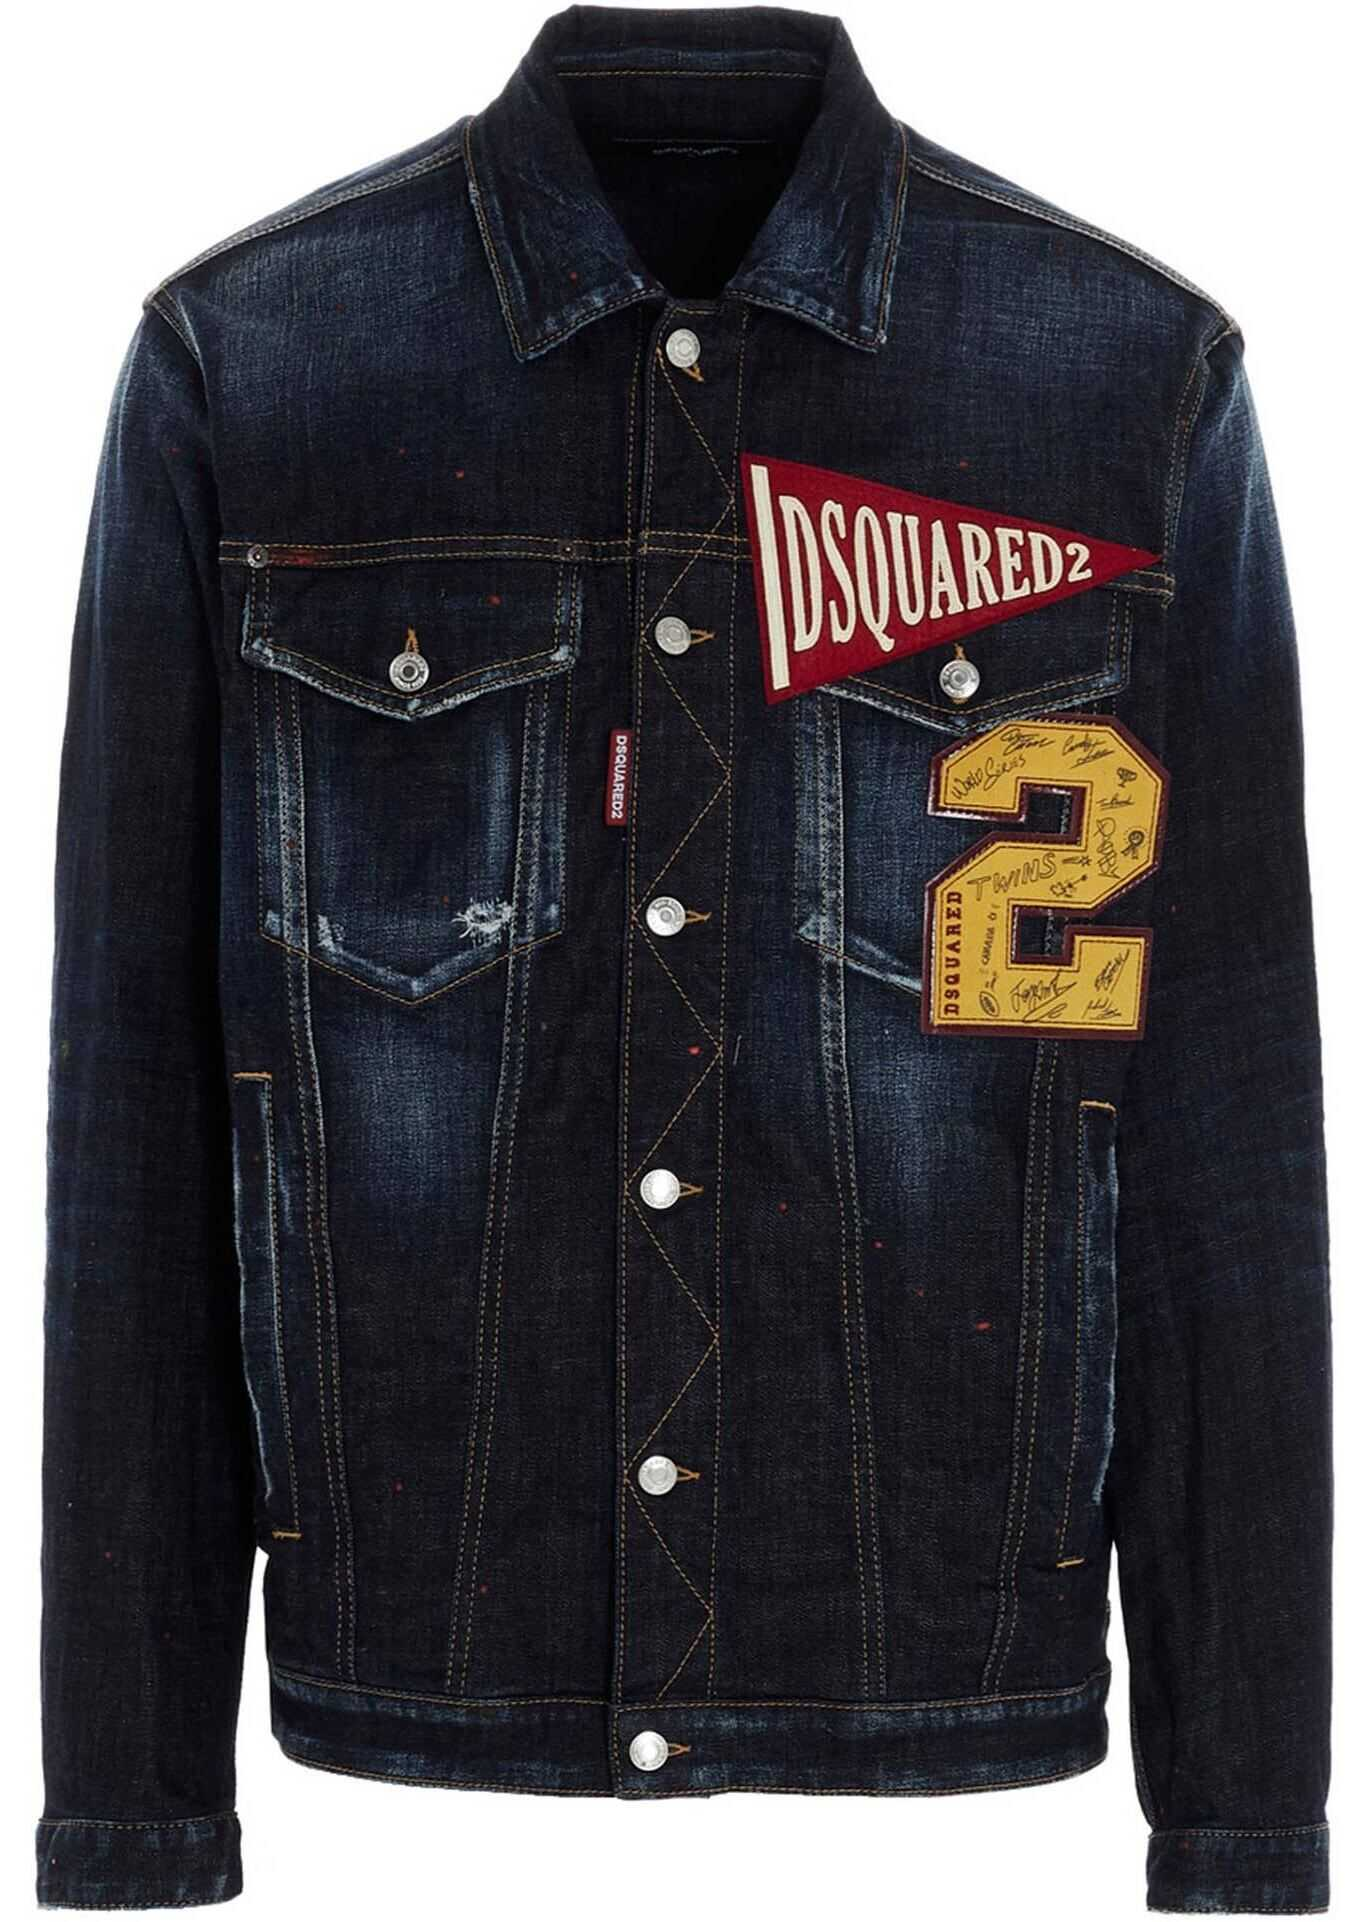 DSQUARED2 Over Denim Jacket In Dark Blue Blue imagine